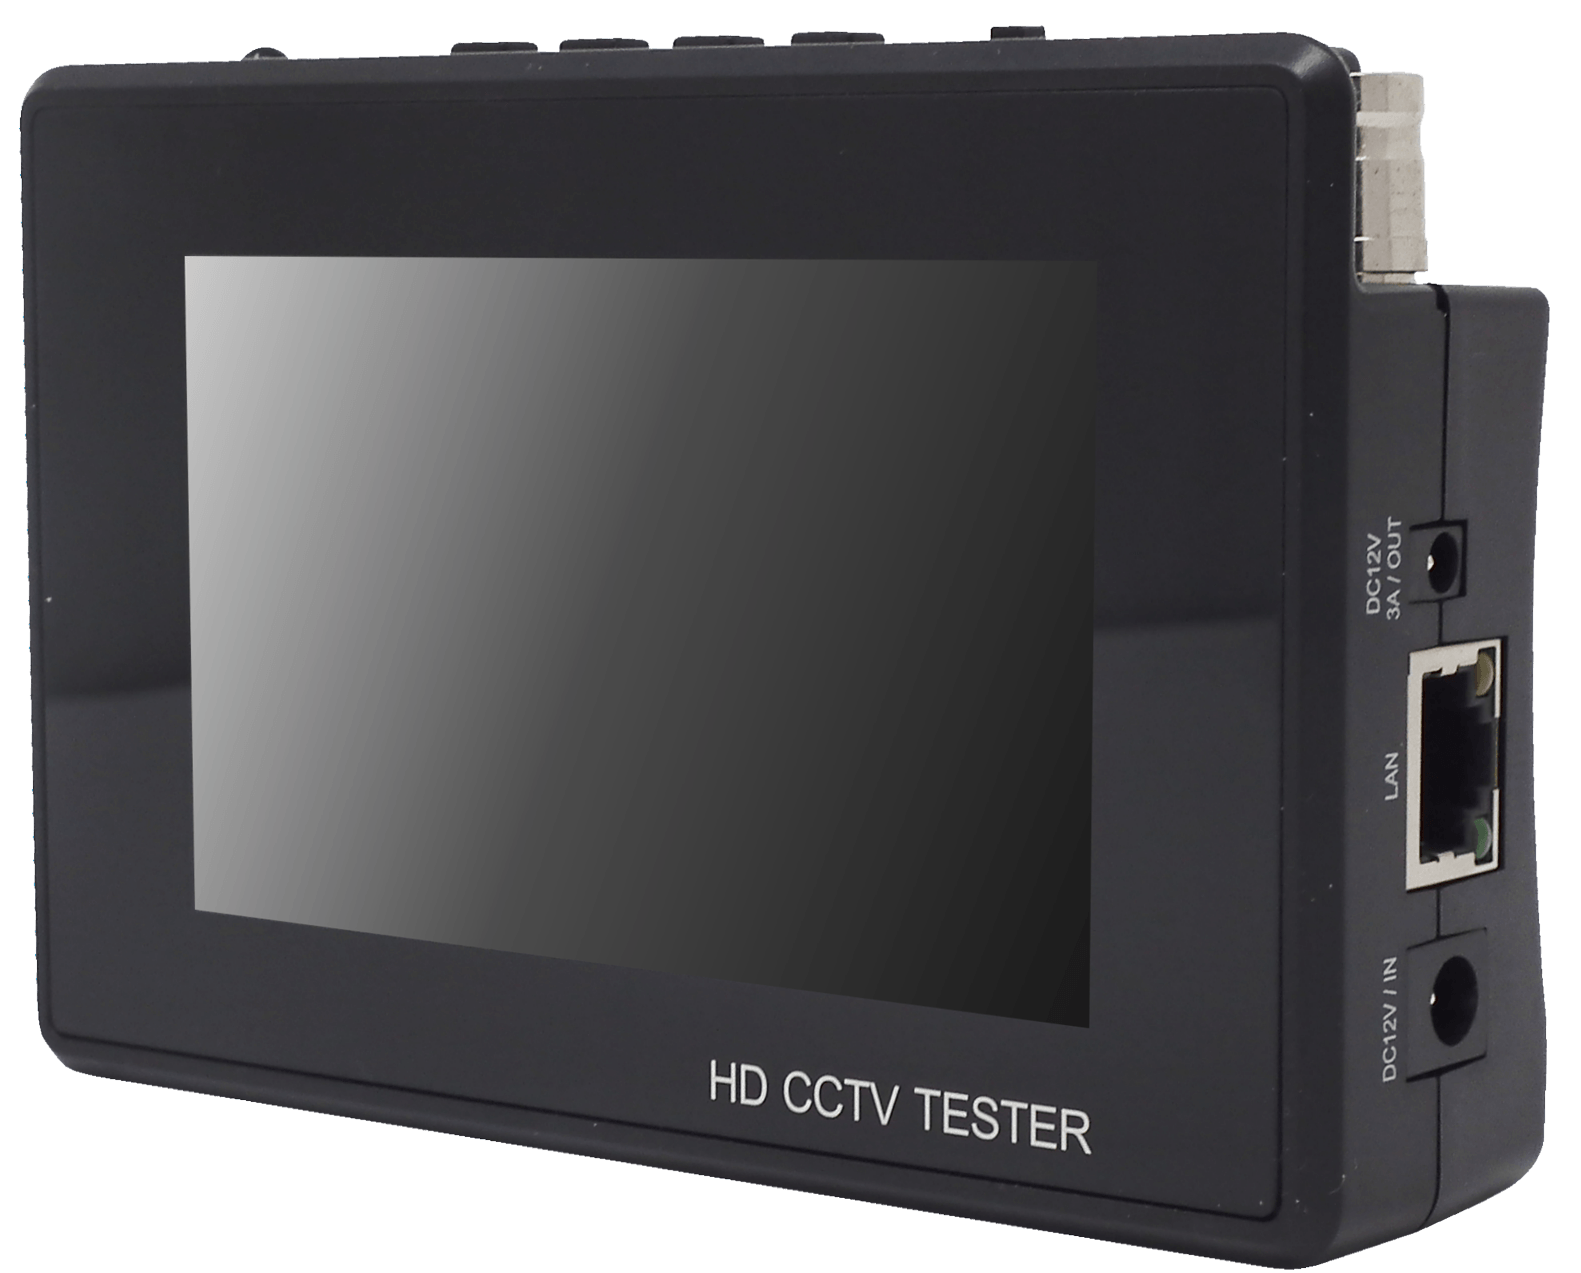 dtv-tester4_view_1